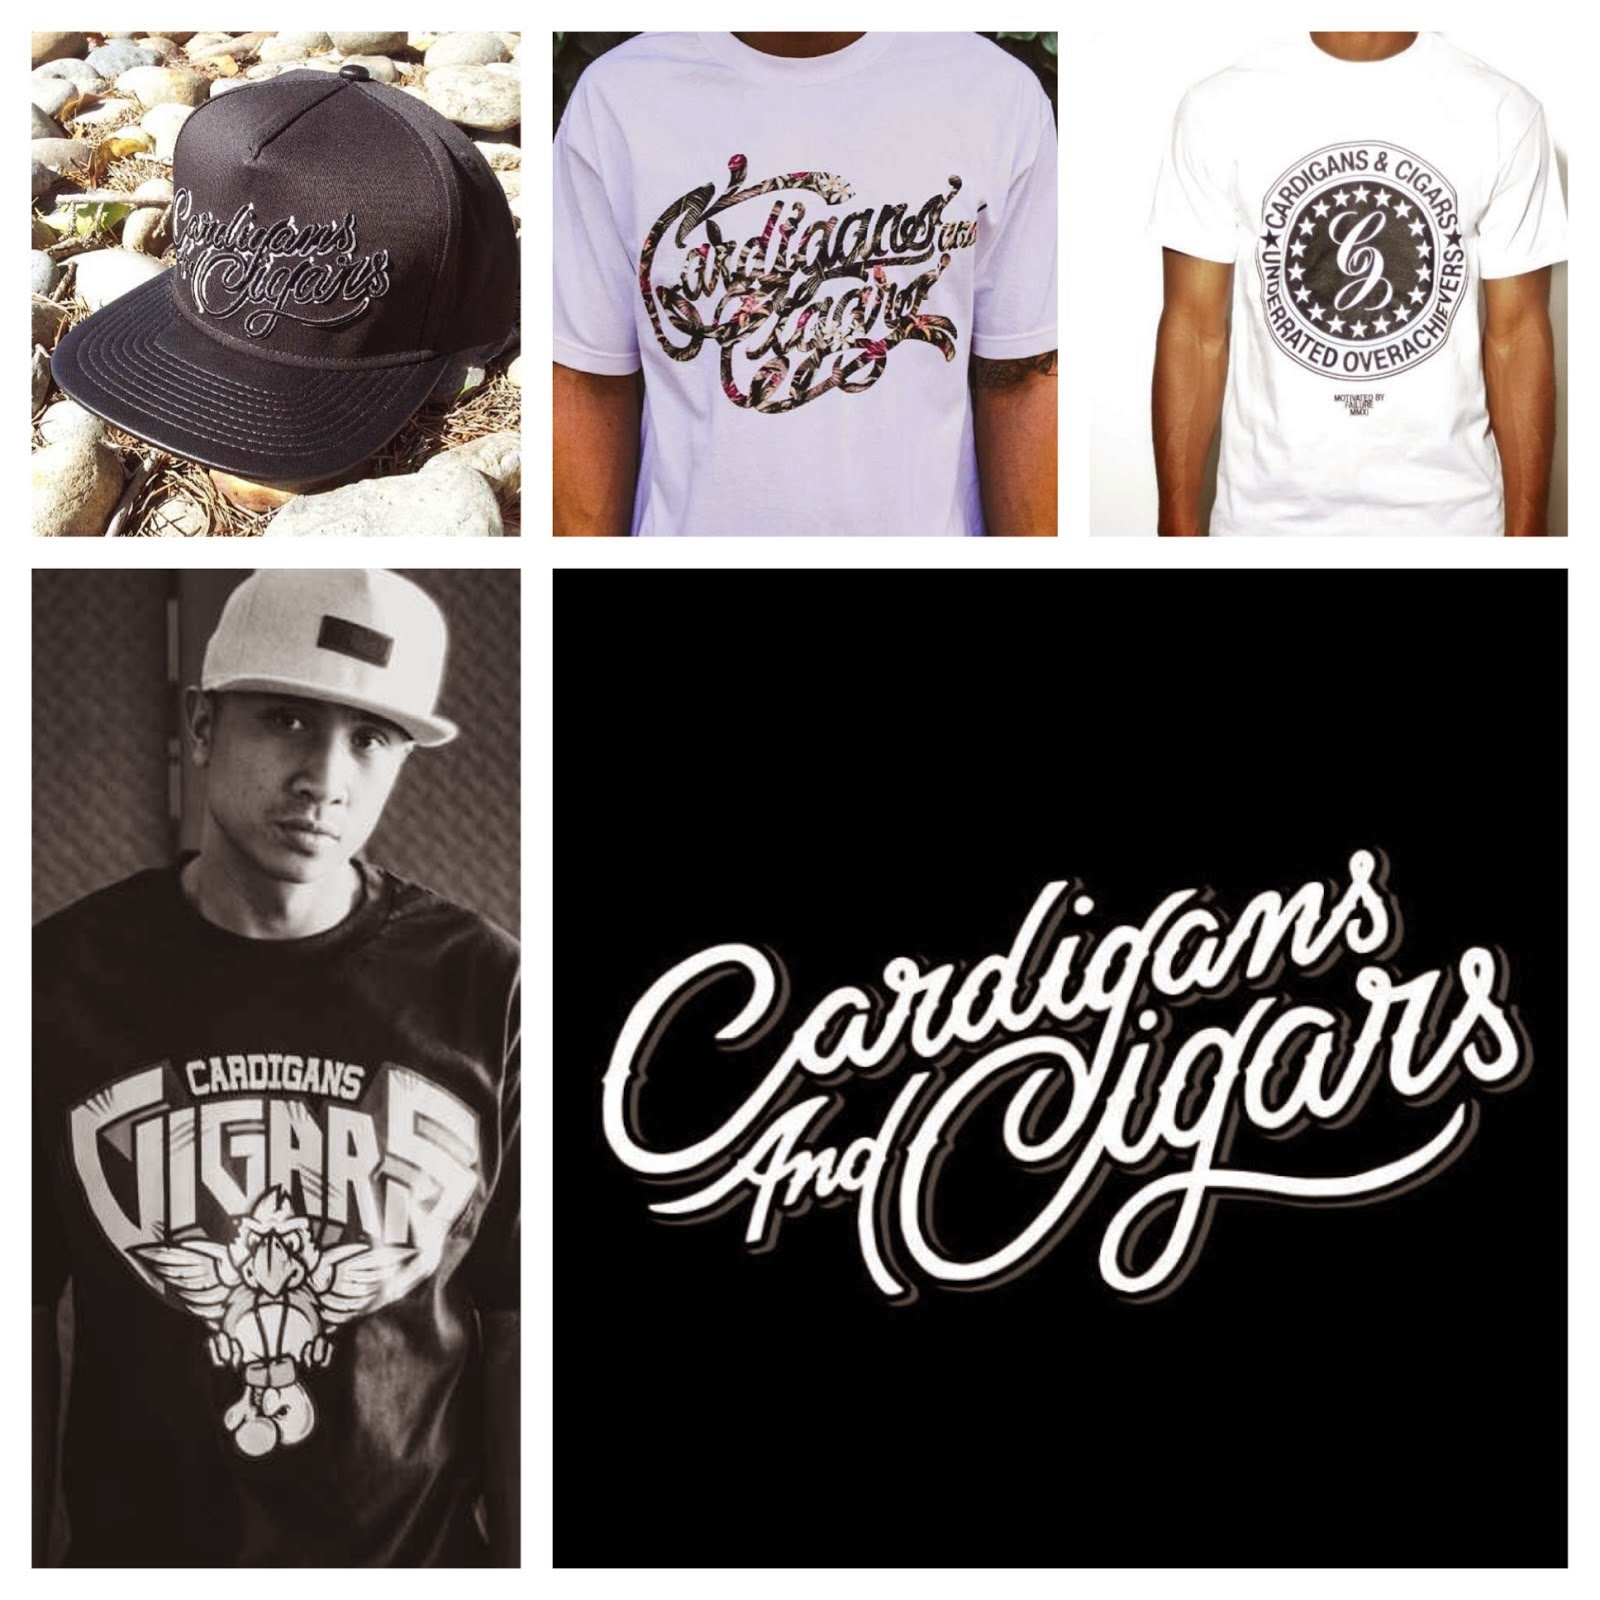 CARDIGANS AND CIGARS CLOTHING